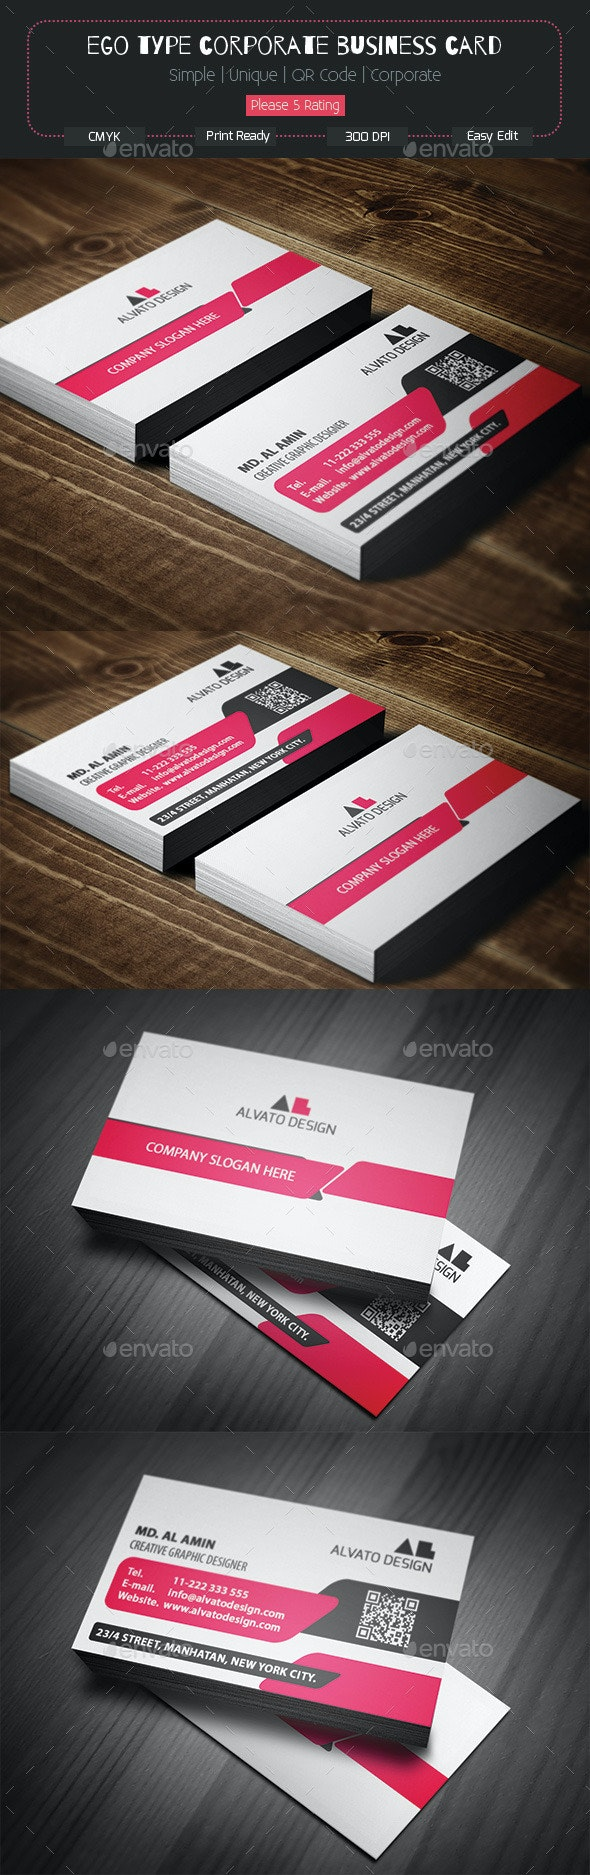 Ego Type Corporate Business Card - Corporate Business Cards